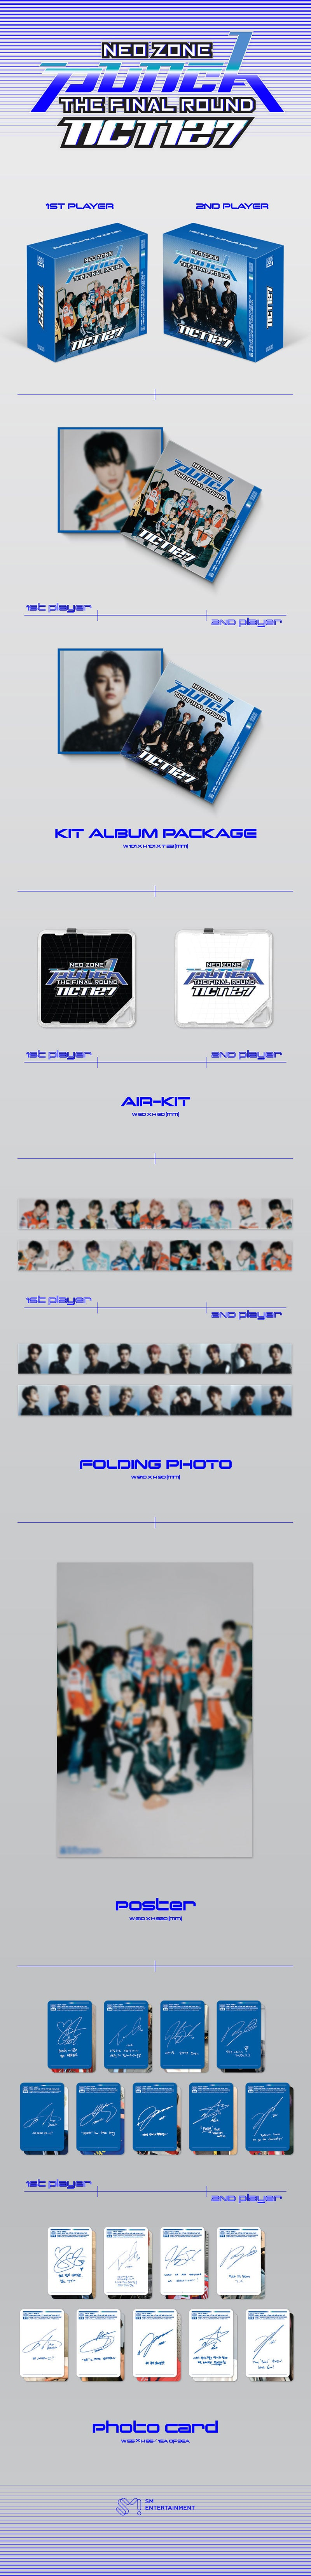 NCT 127 - 2nd Album Repackage [NCT #127 Neo Zone: The Final Round] KIT Album